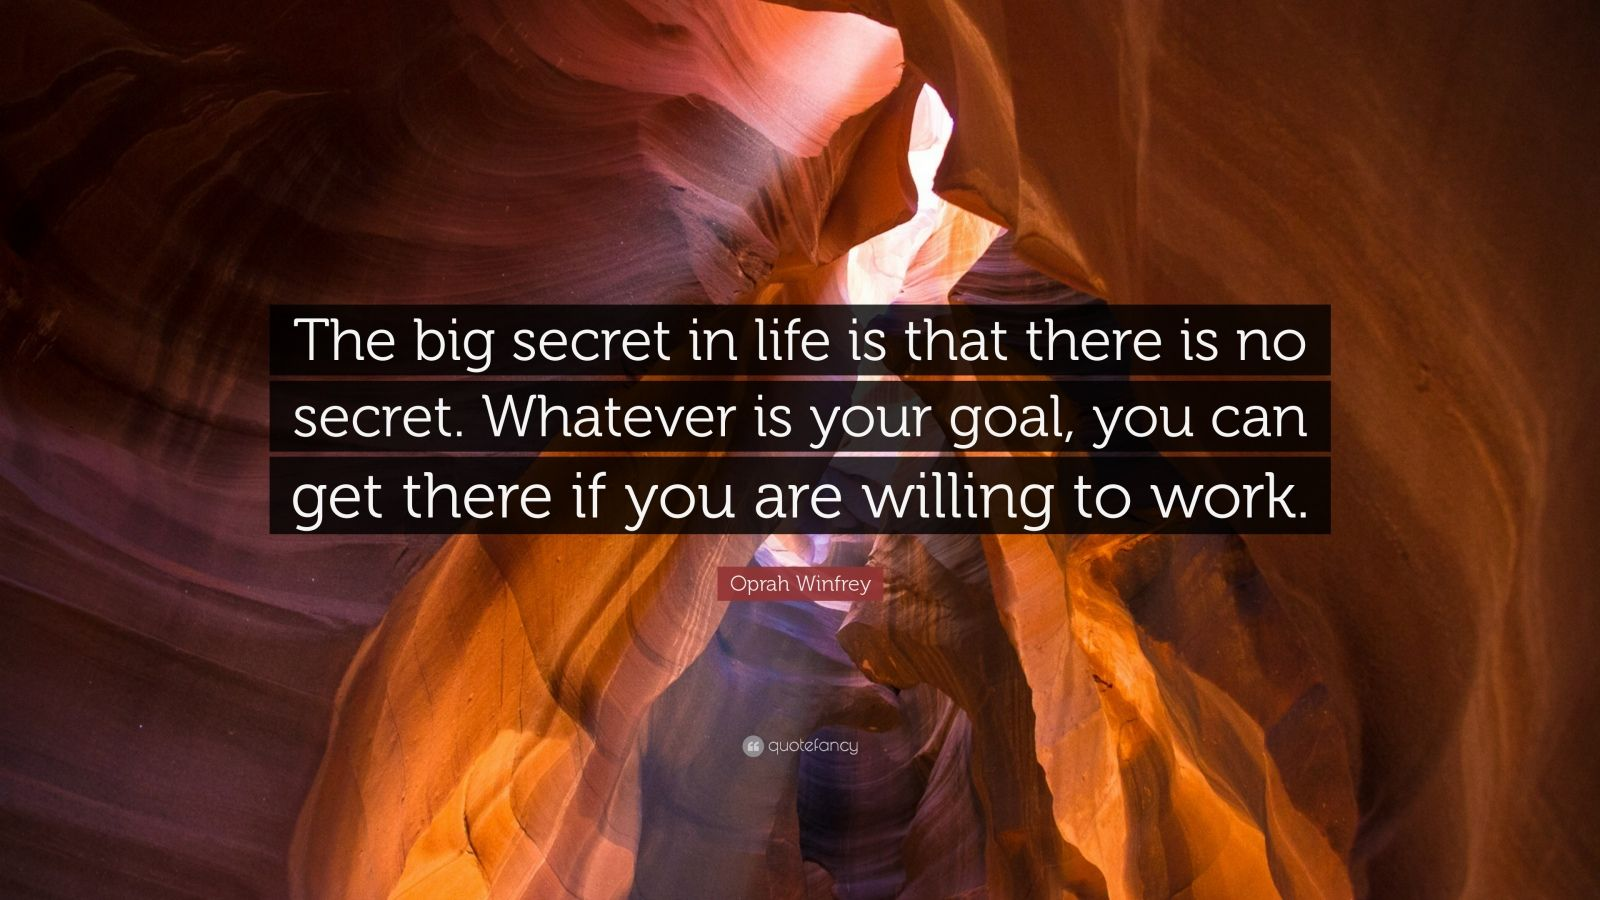 The secret to life is there is no secret mp3